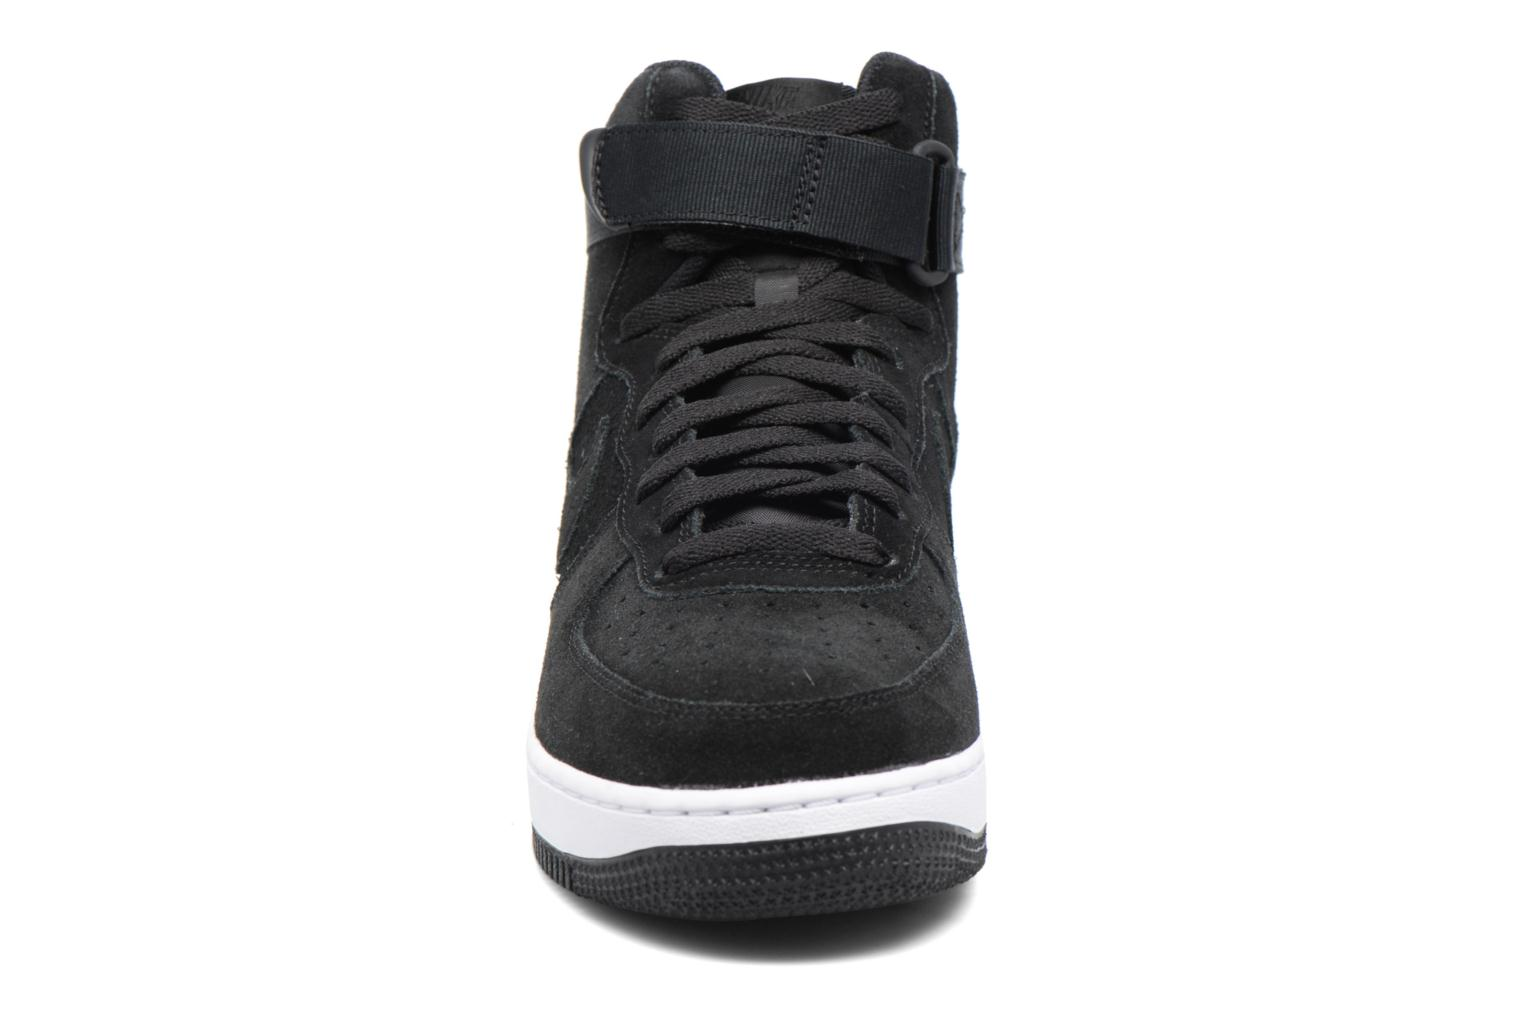 Air Force 1 High'07 Black/Black-Black-White